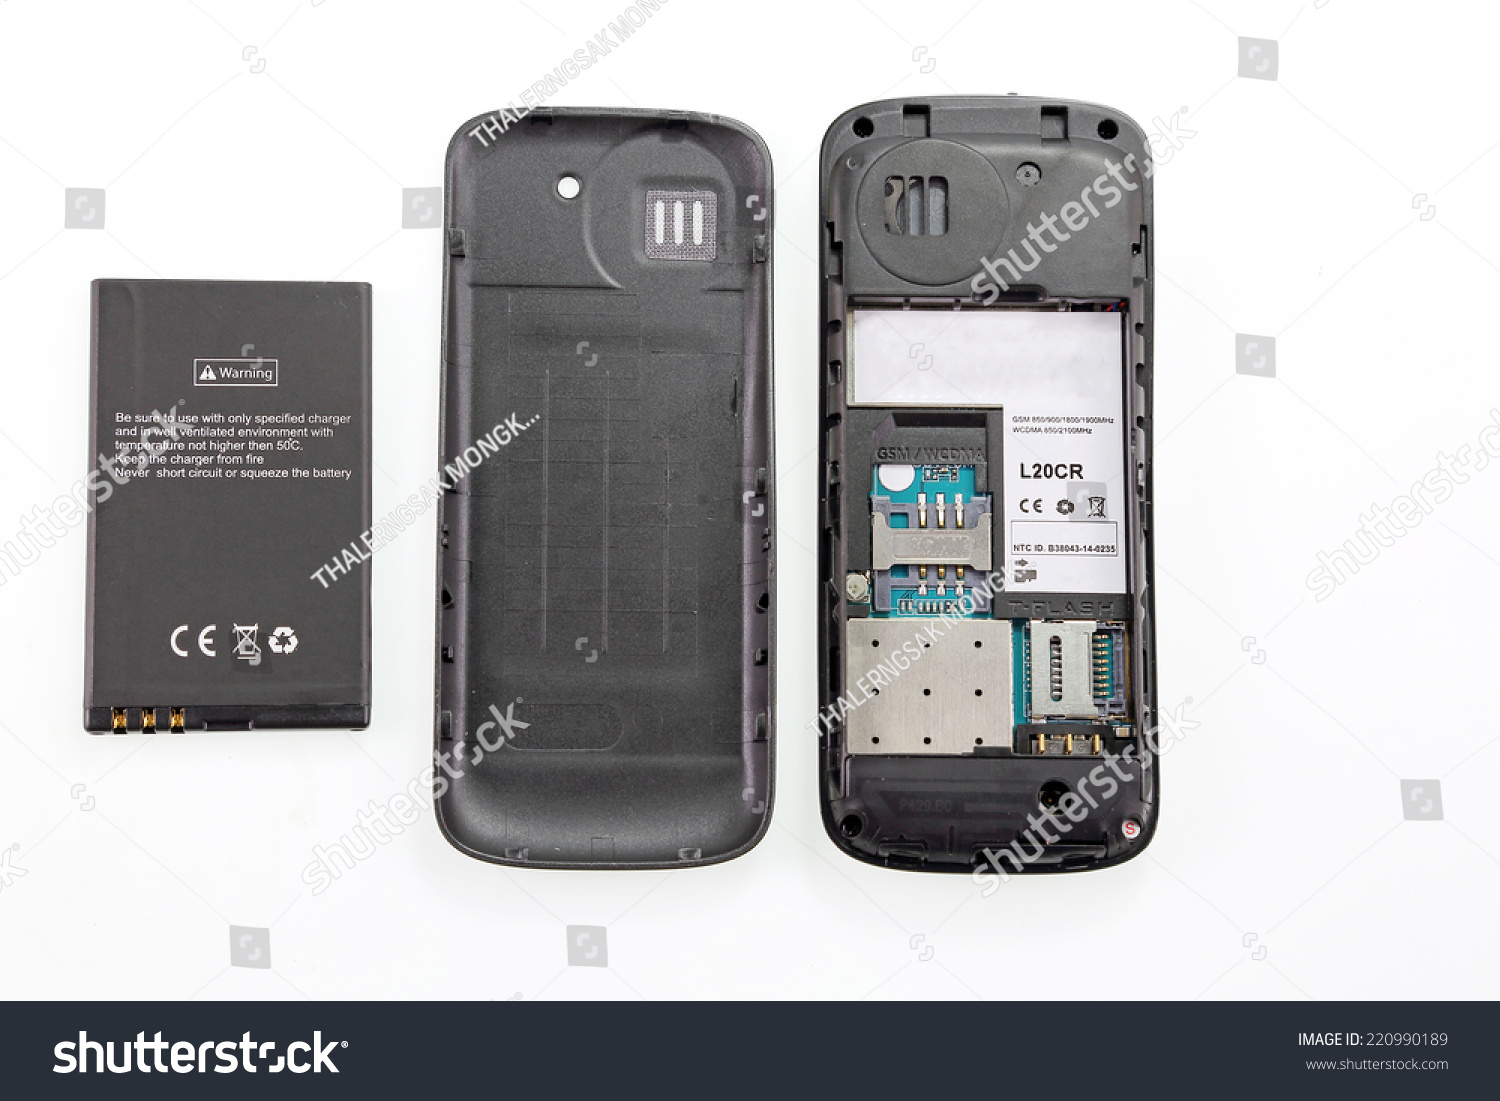 Deconstructing Mobile Phone Stock Photo Edit Now 220990189 Memory Chips In A Cell Board Royalty Free Image